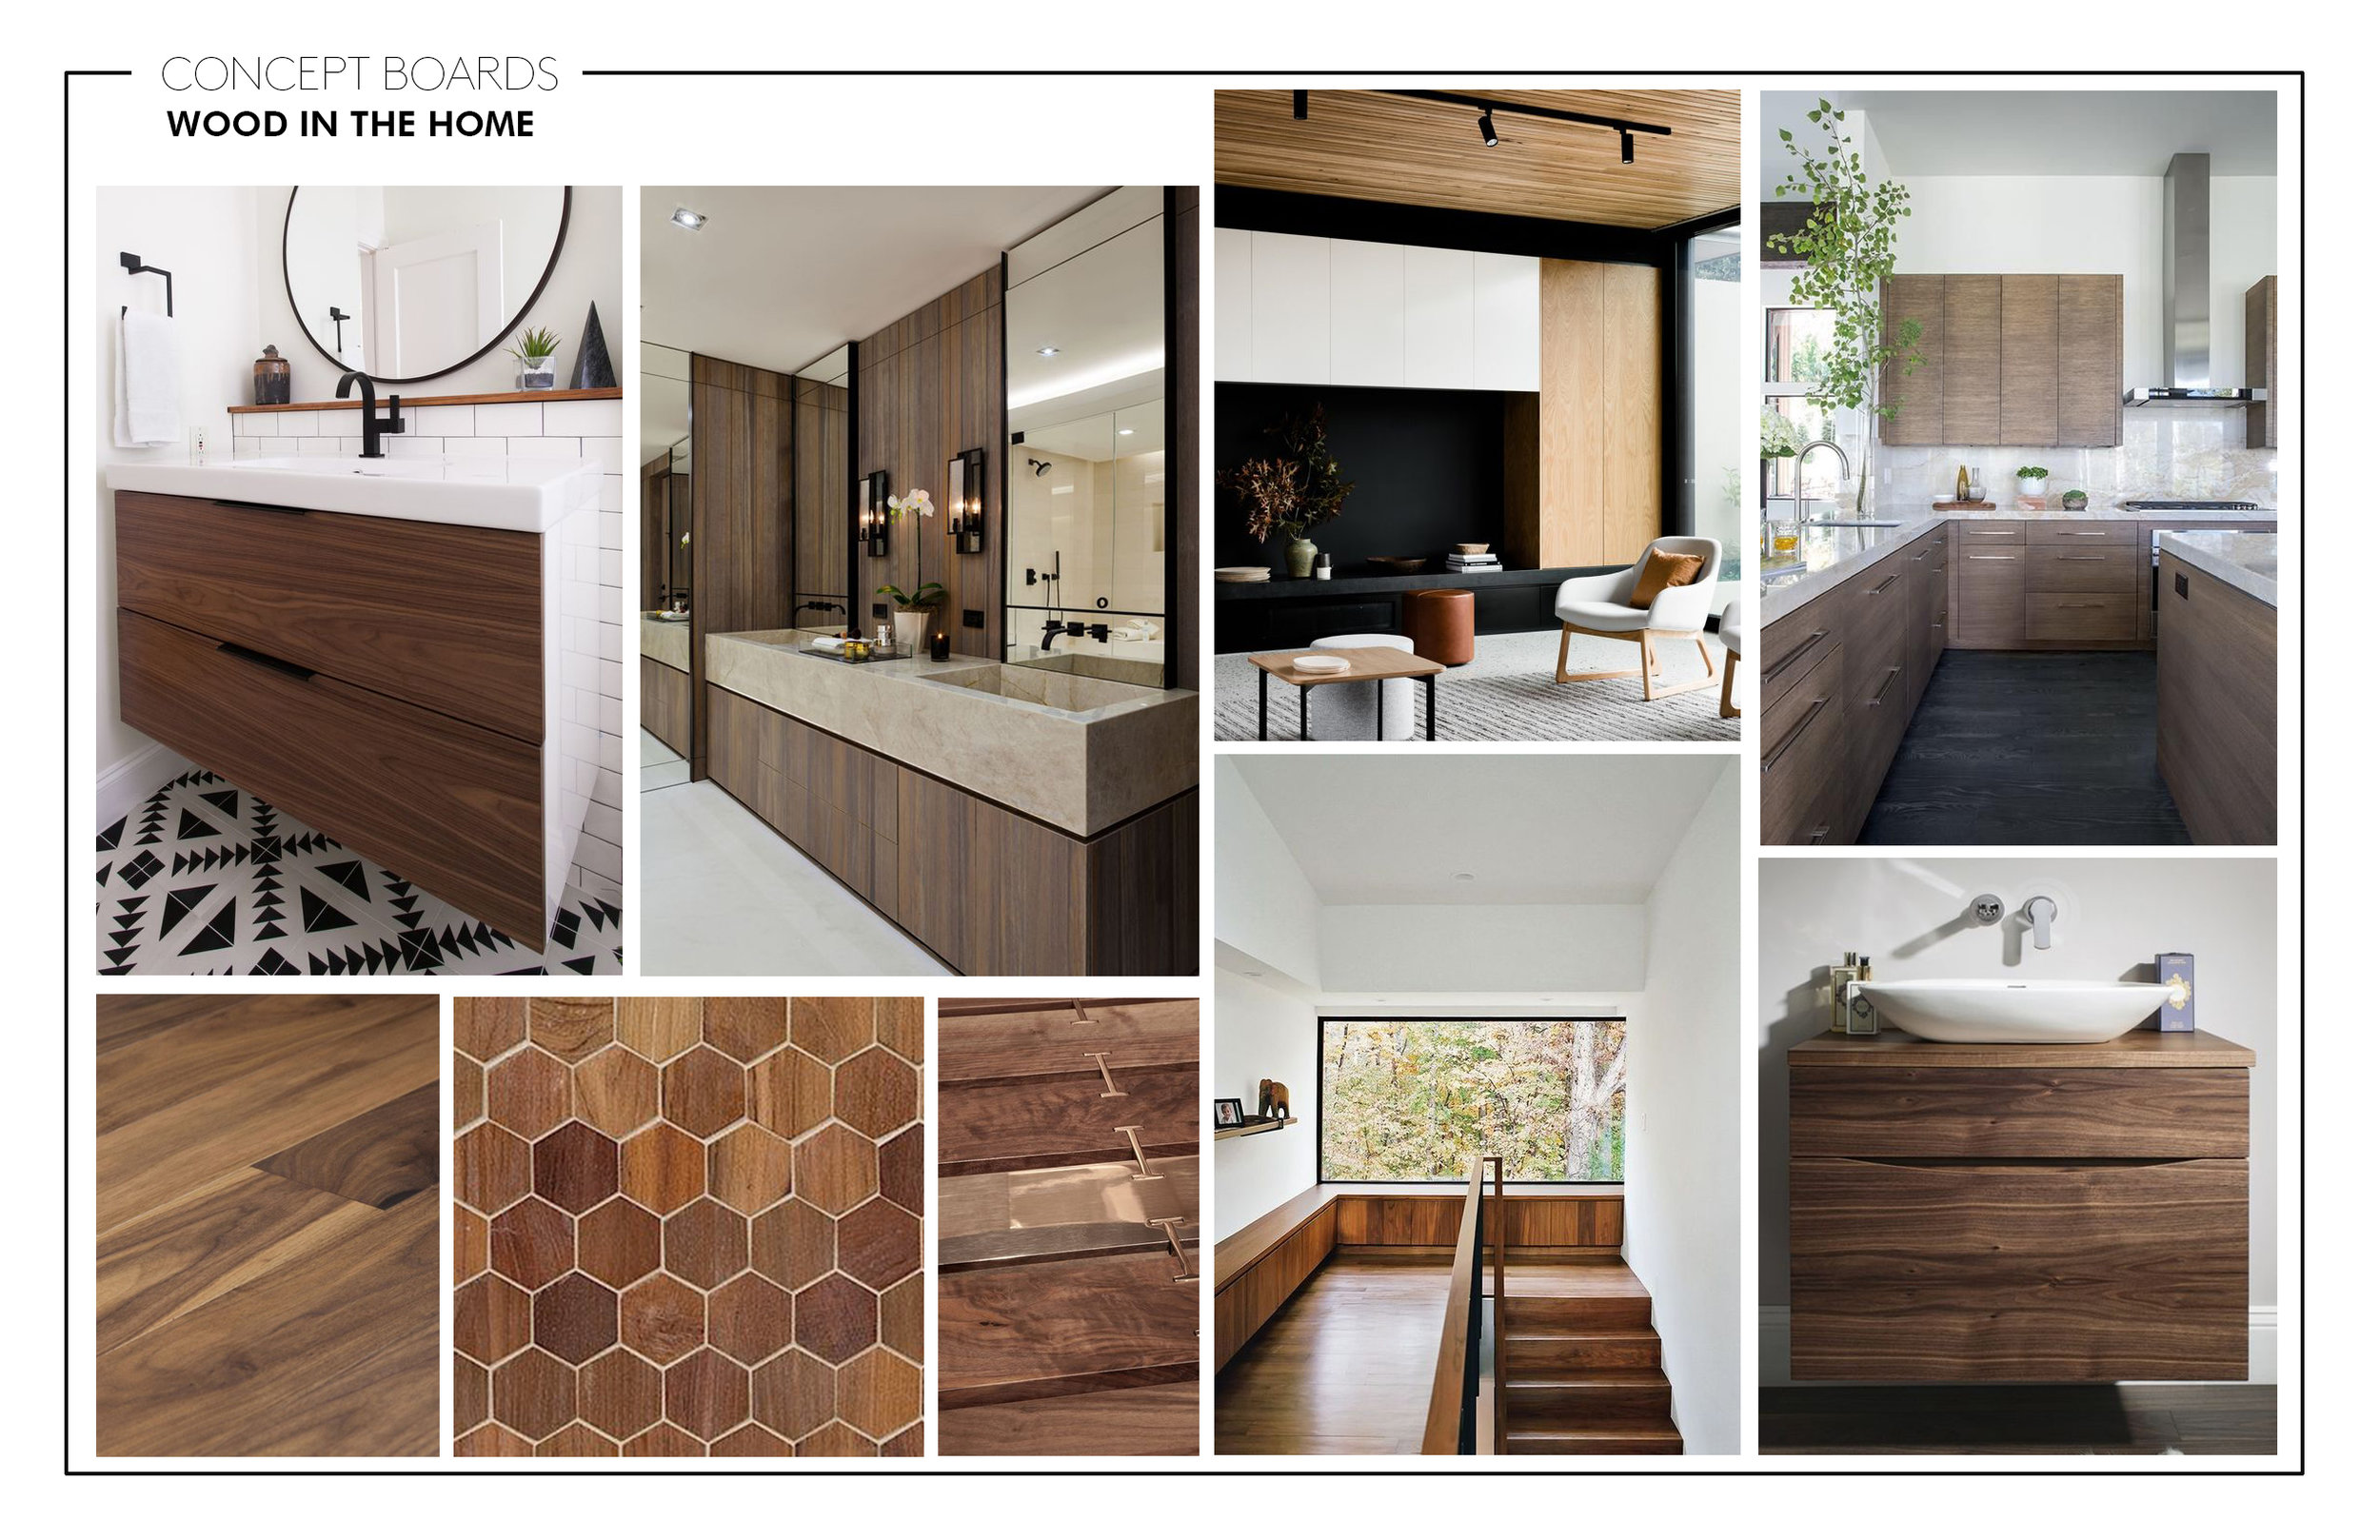 Concept Boards Warm It Up With Wood Studio Bka